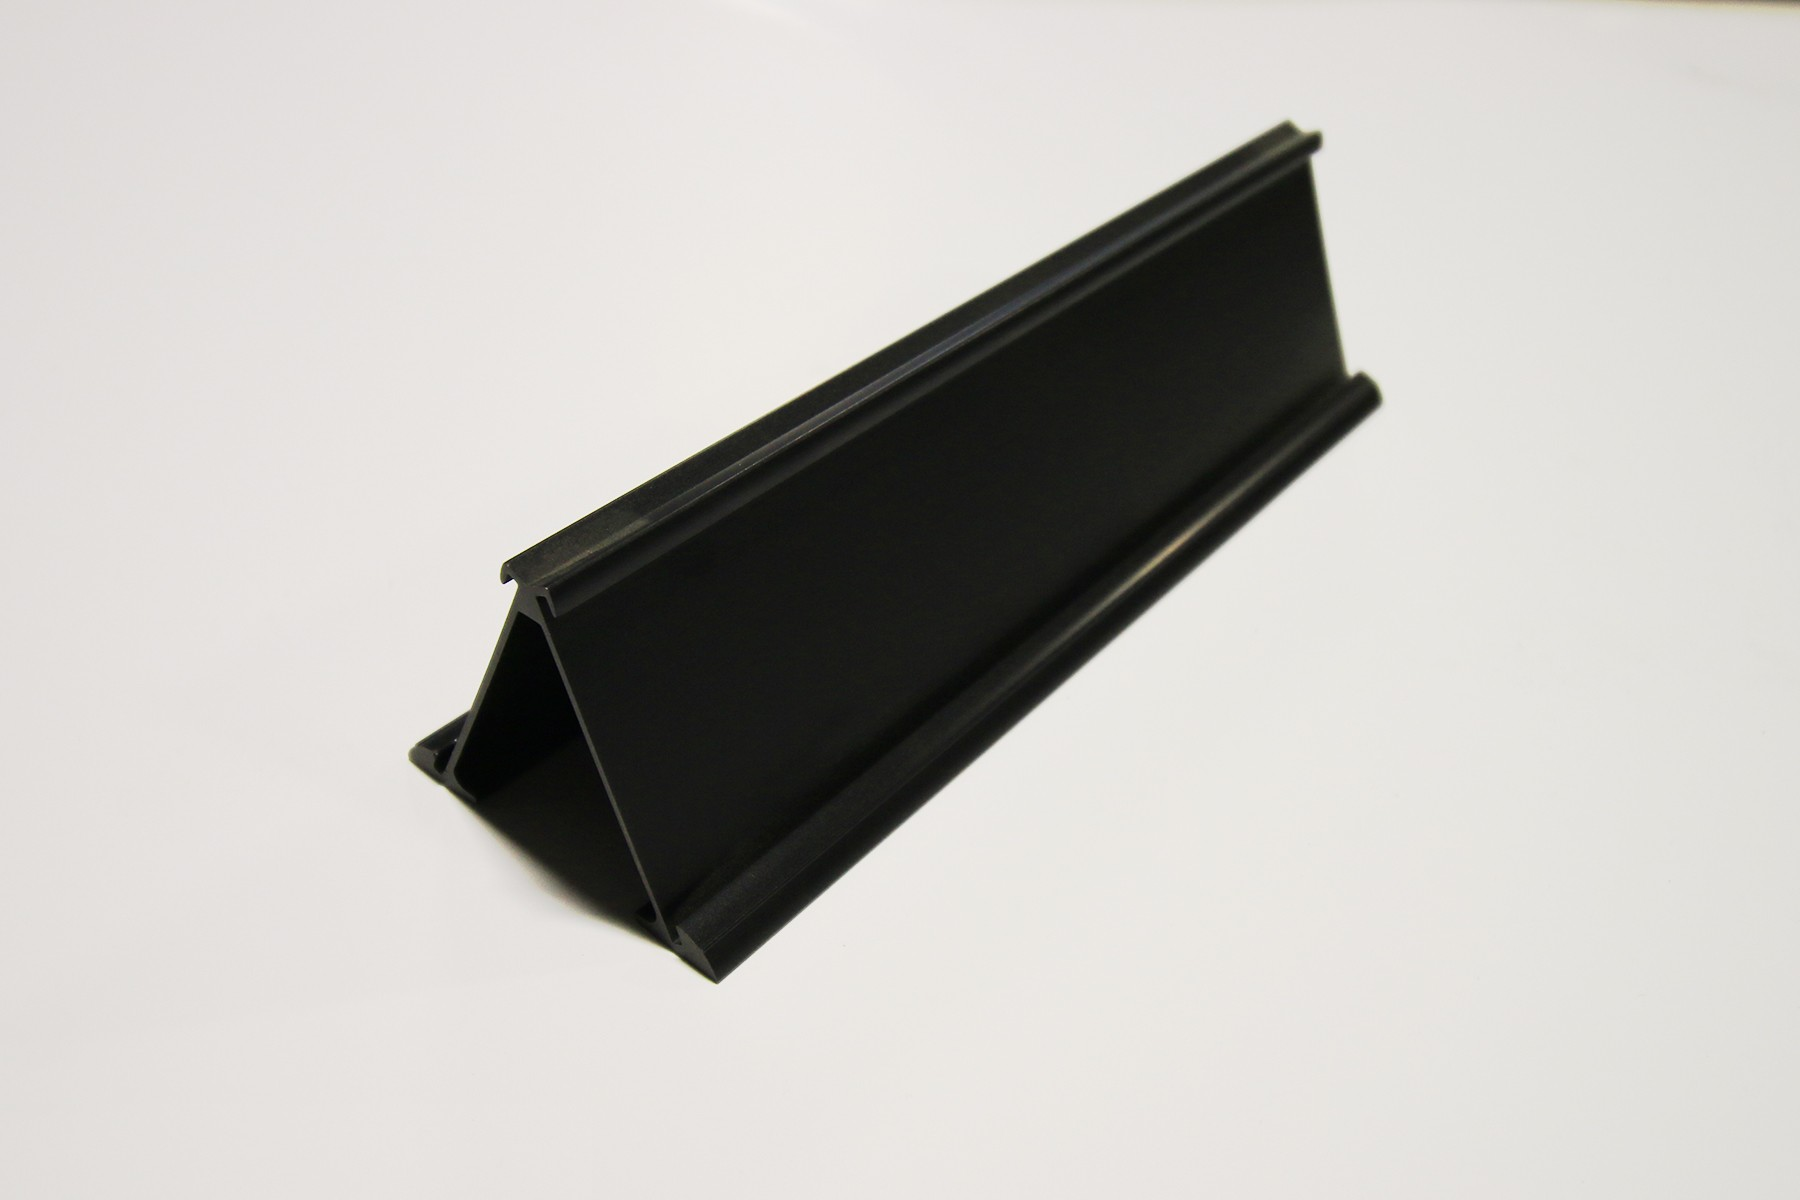 "2"" x 1/16"" x 8"" Double-Sided Desk Holder, Black"